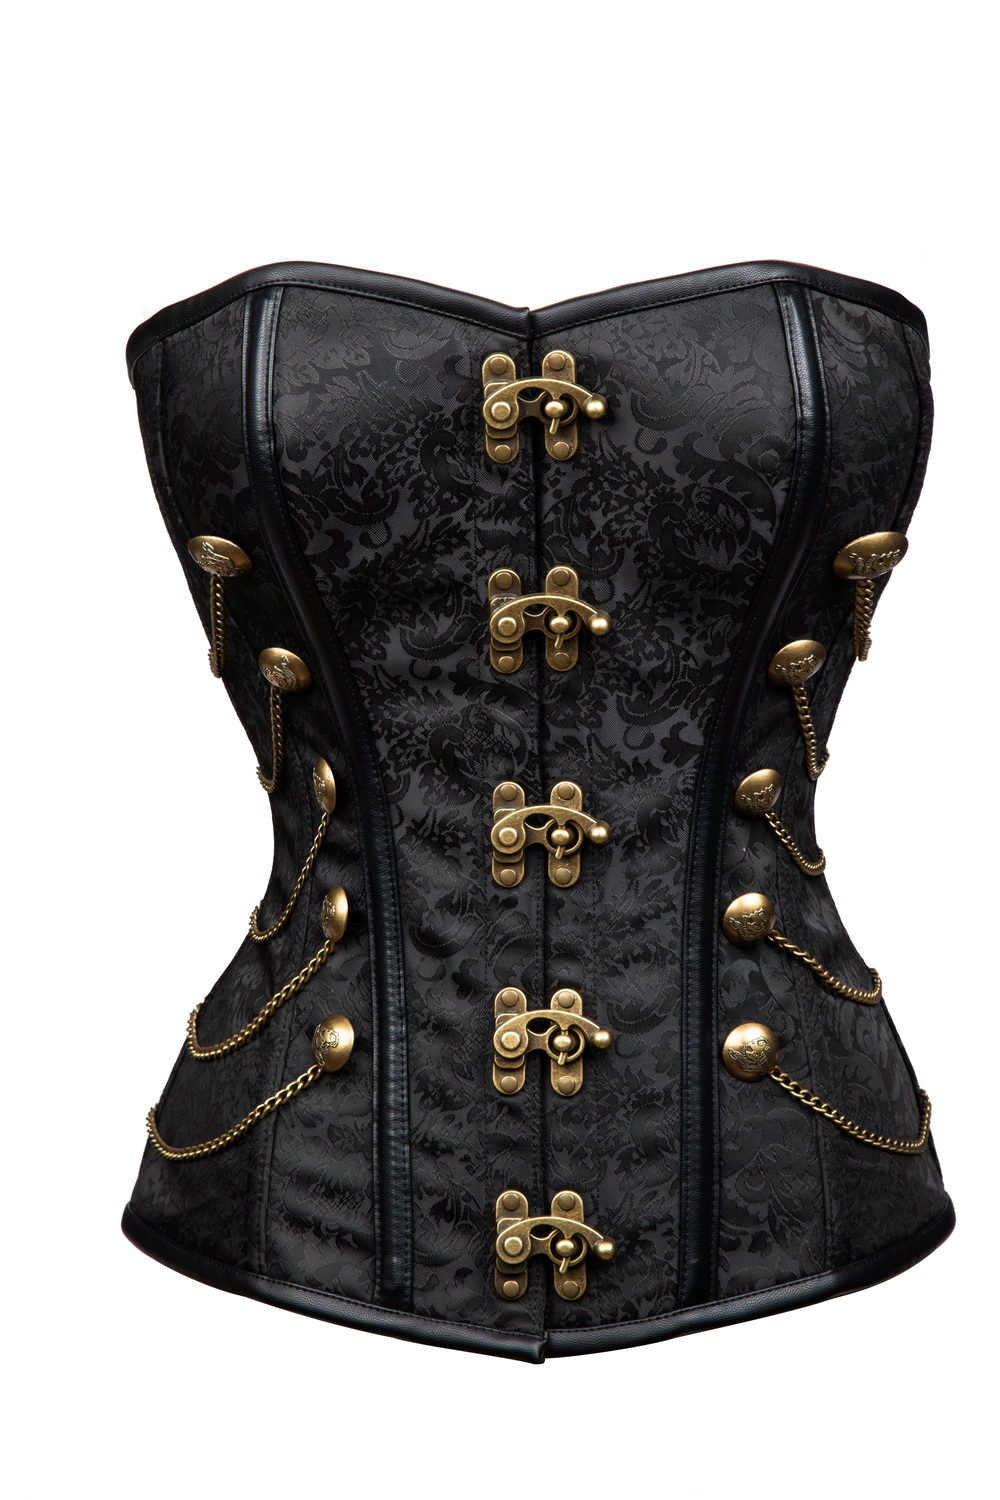 Image result for corset buckle chains